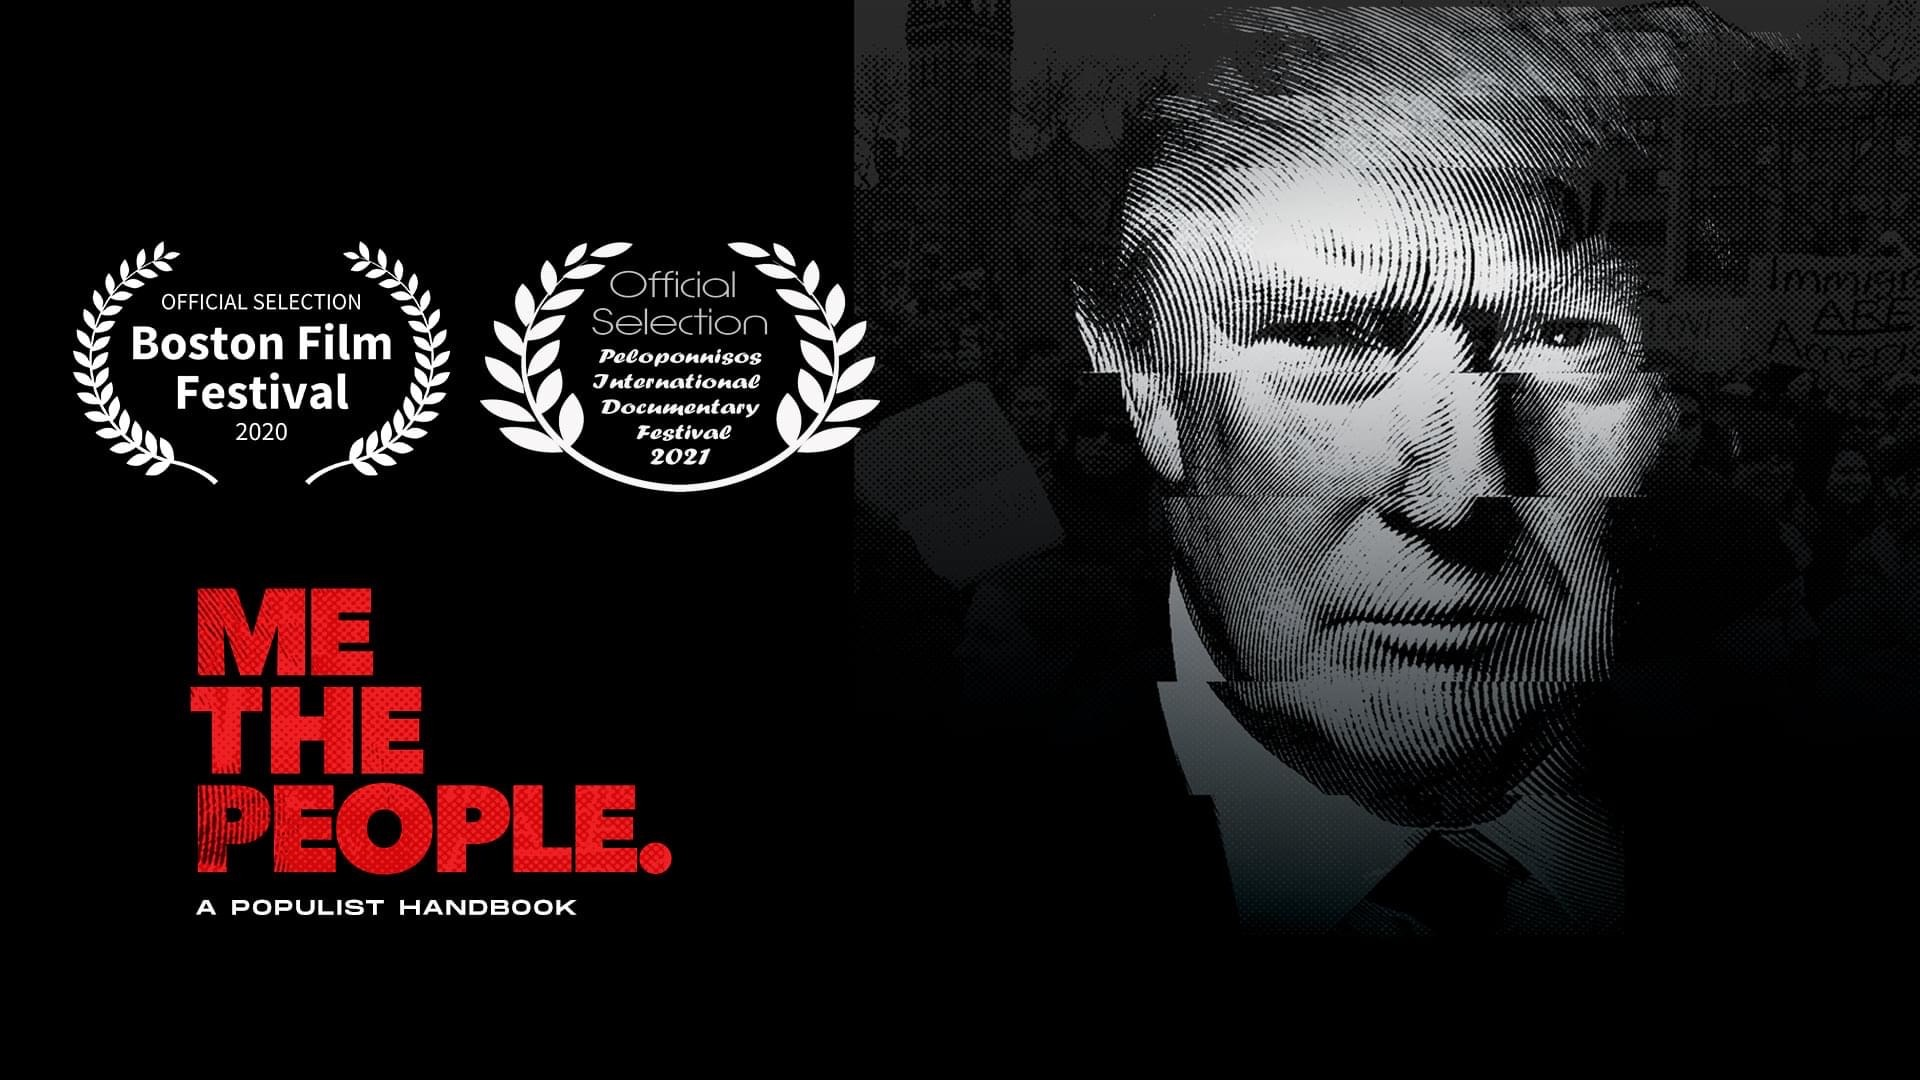 Me The People Documentary